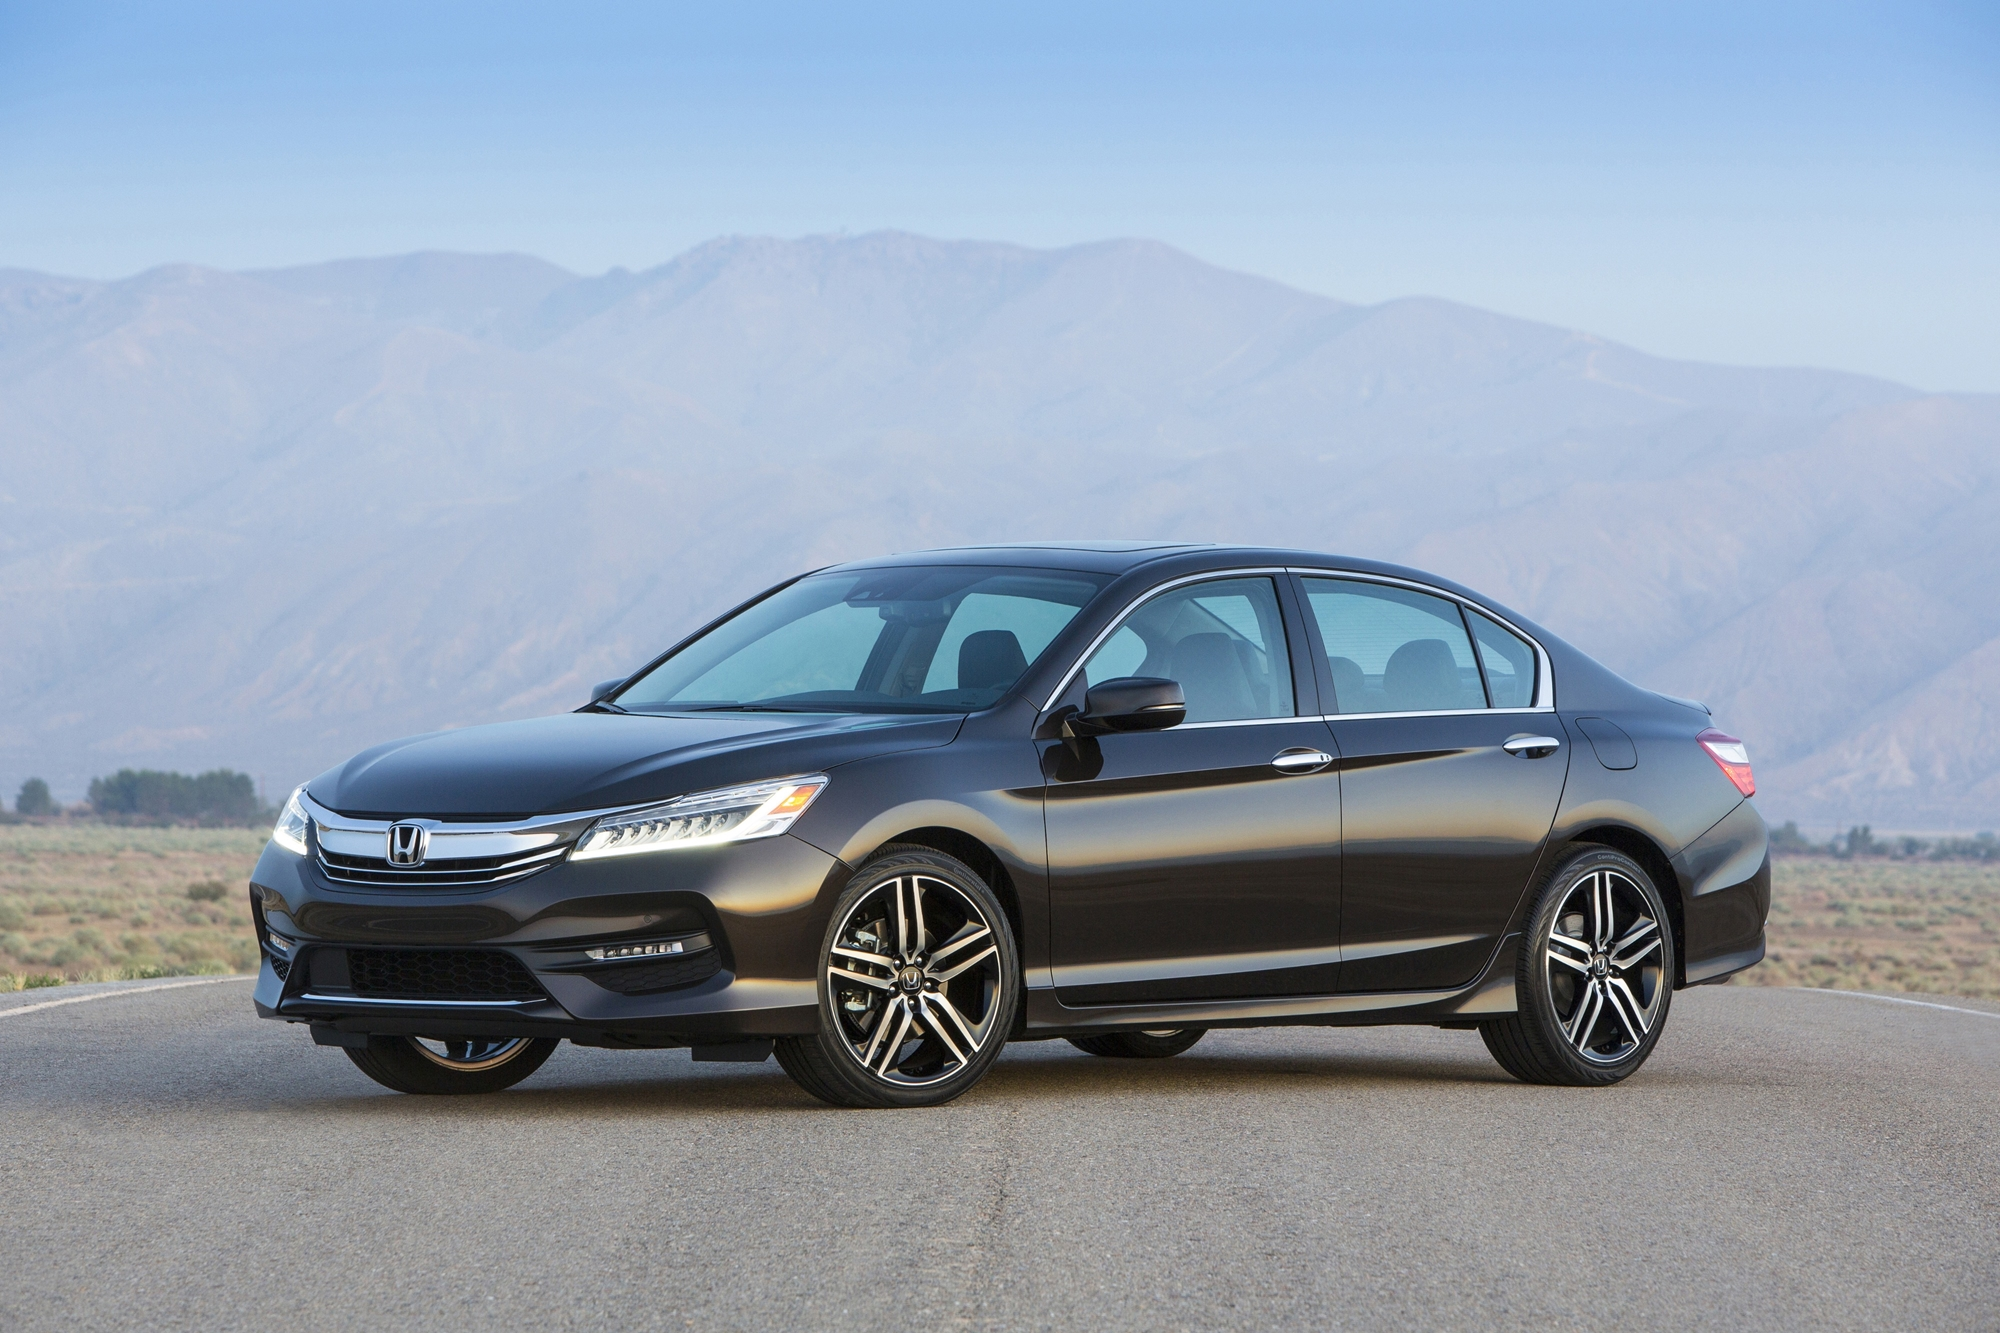 2017 Honda Accord Sport Se Full Specs Features And Price Carbuzz